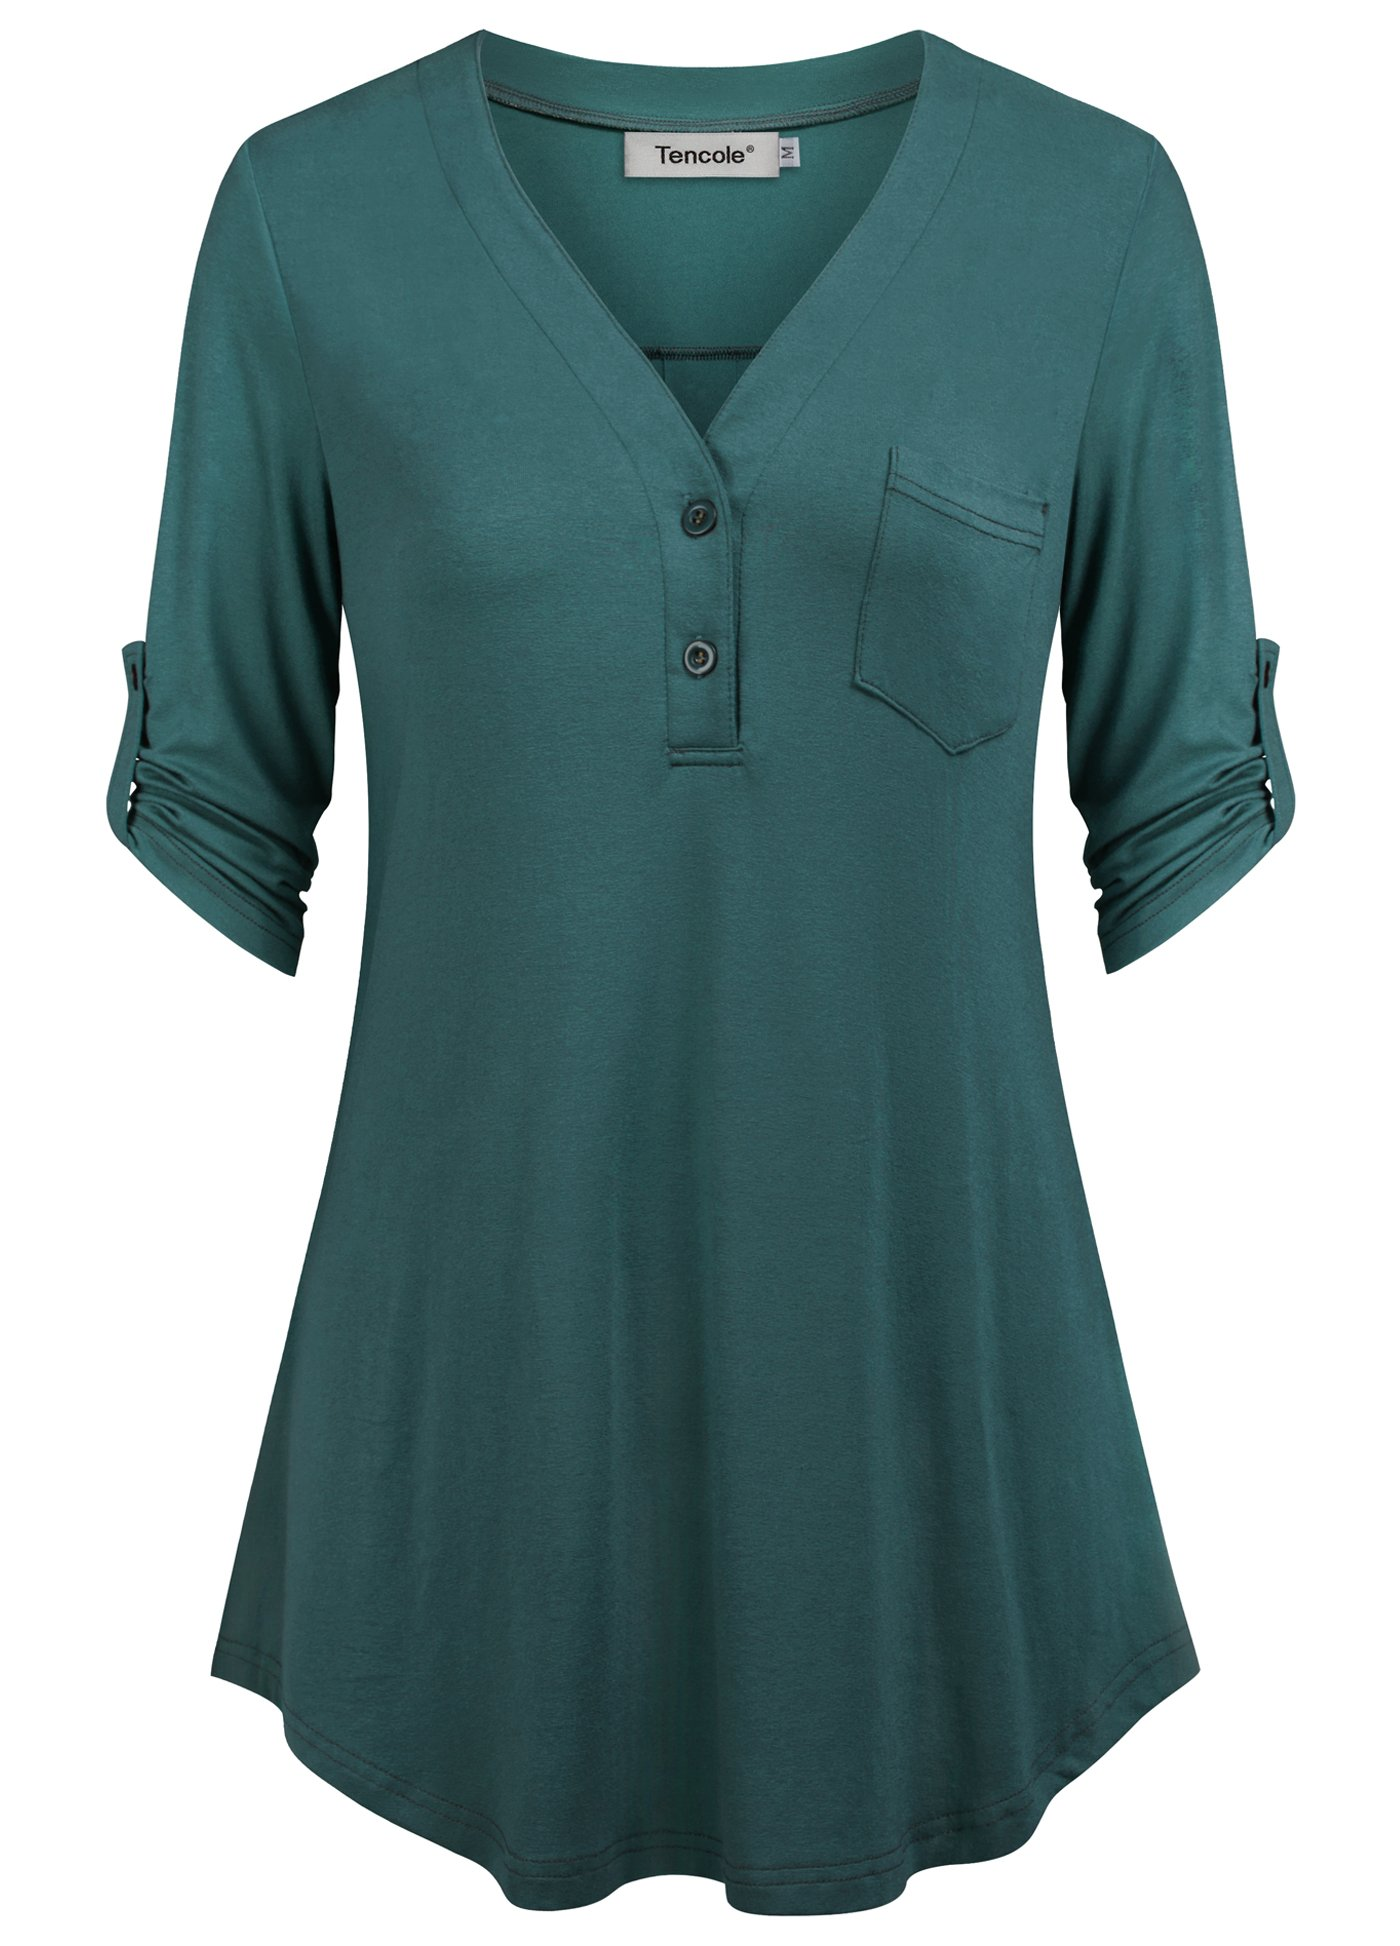 Tencole Button Front Tops for Women, 3/4 Sleeve Blend Cotton Office Wear Tunics Blouses Flattering Hemline Tee Shirt for Work Teal